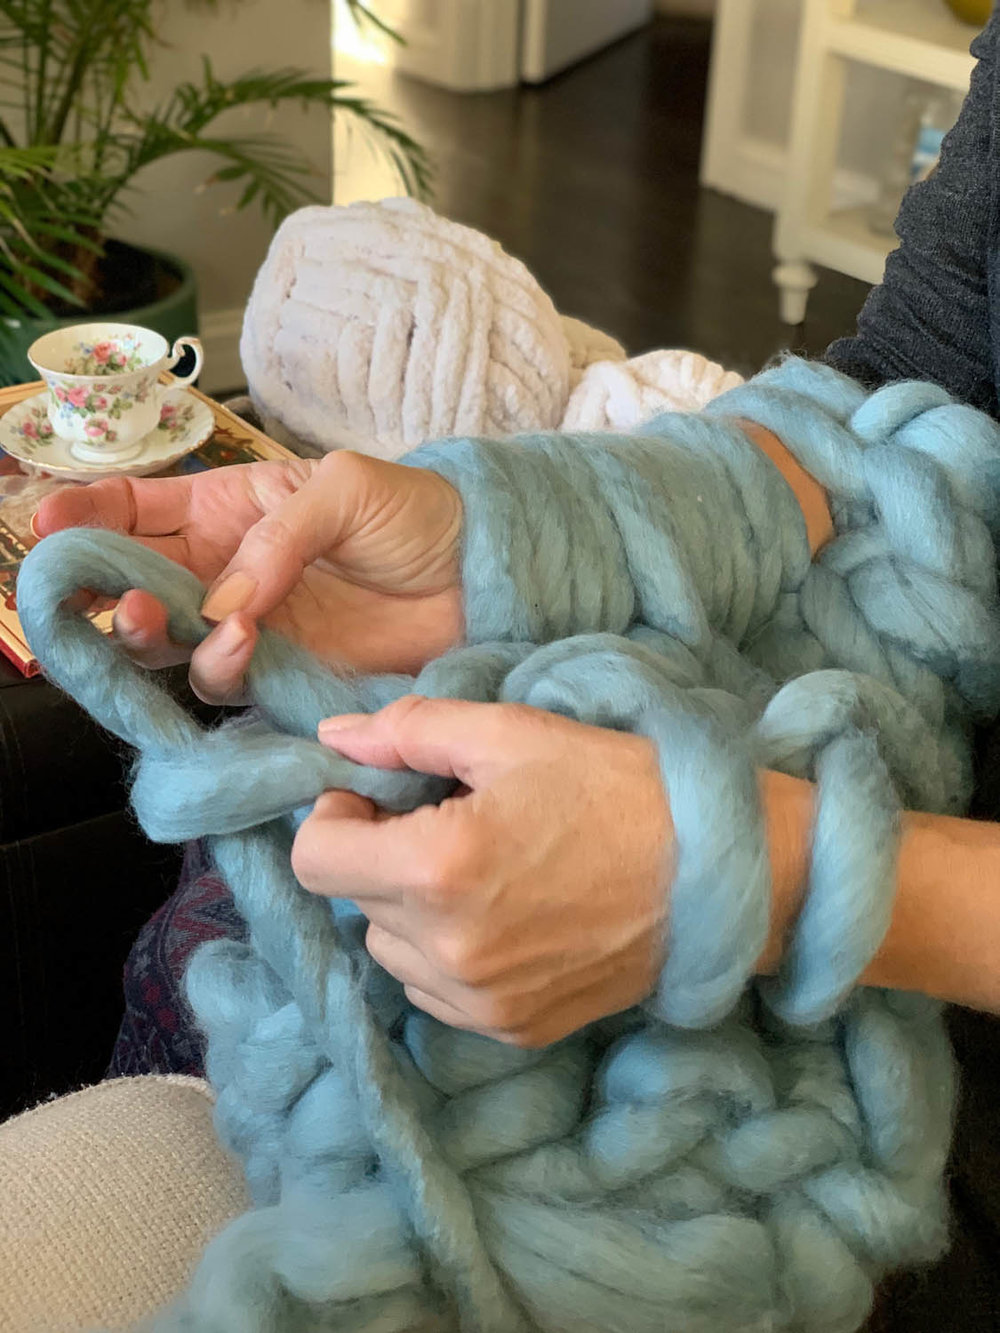 Rows of knitting on arms for making a 1-hour arm-knitted throw